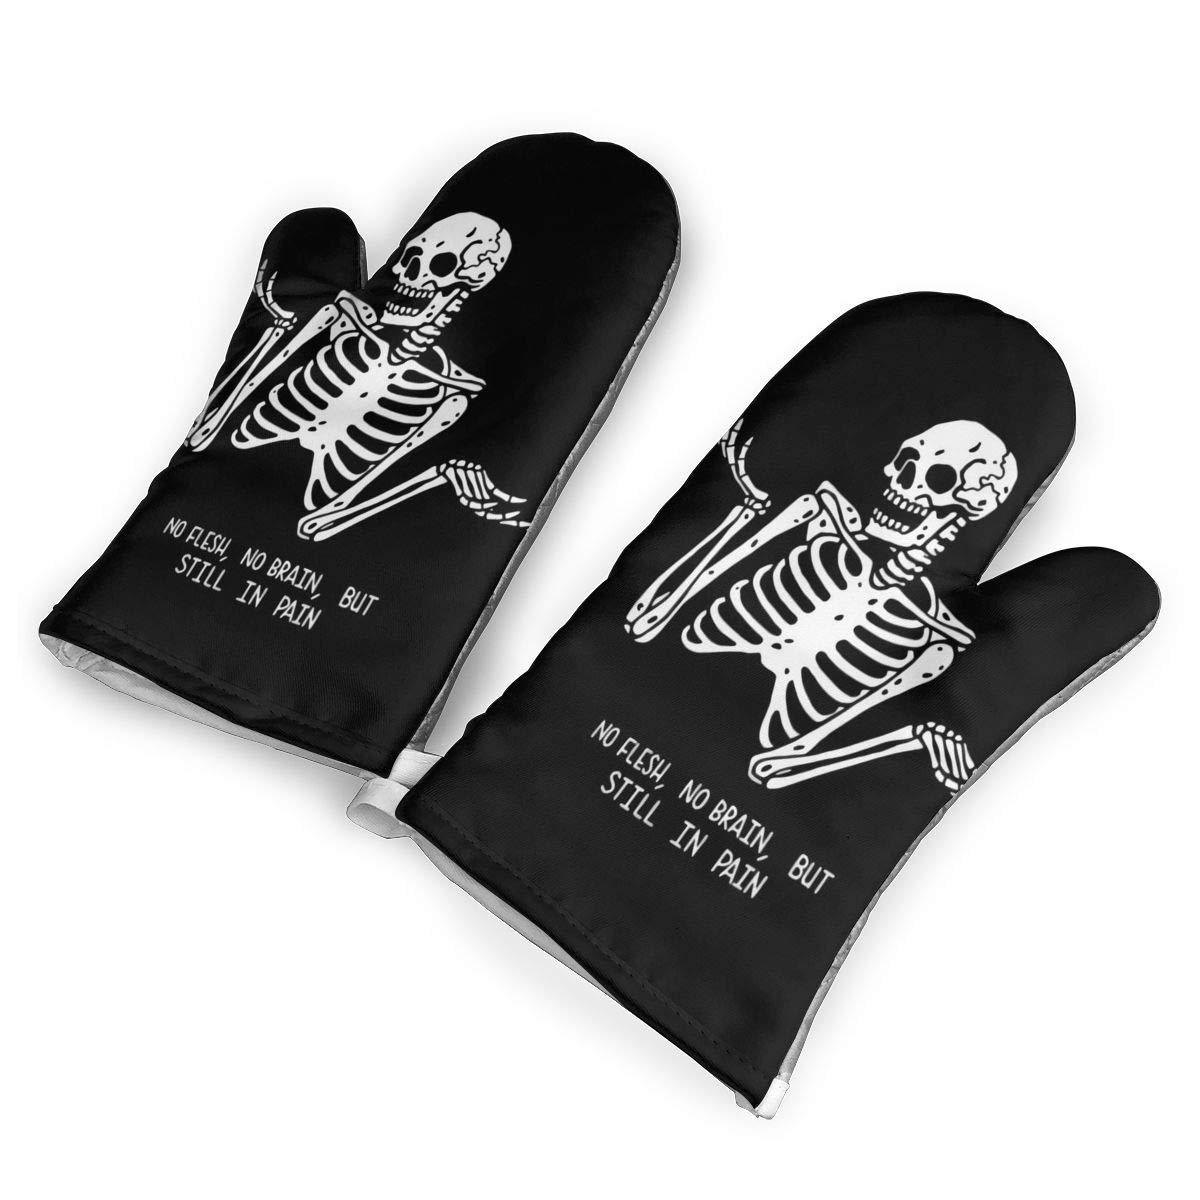 not Skeleton Gesture Nothing Oven Mitts with Polyester Fabric Printed Pattern,1 Pair of Heat Resistant Oven Gloves for Cooking,Baking,Grilling,Barbecue Potholders